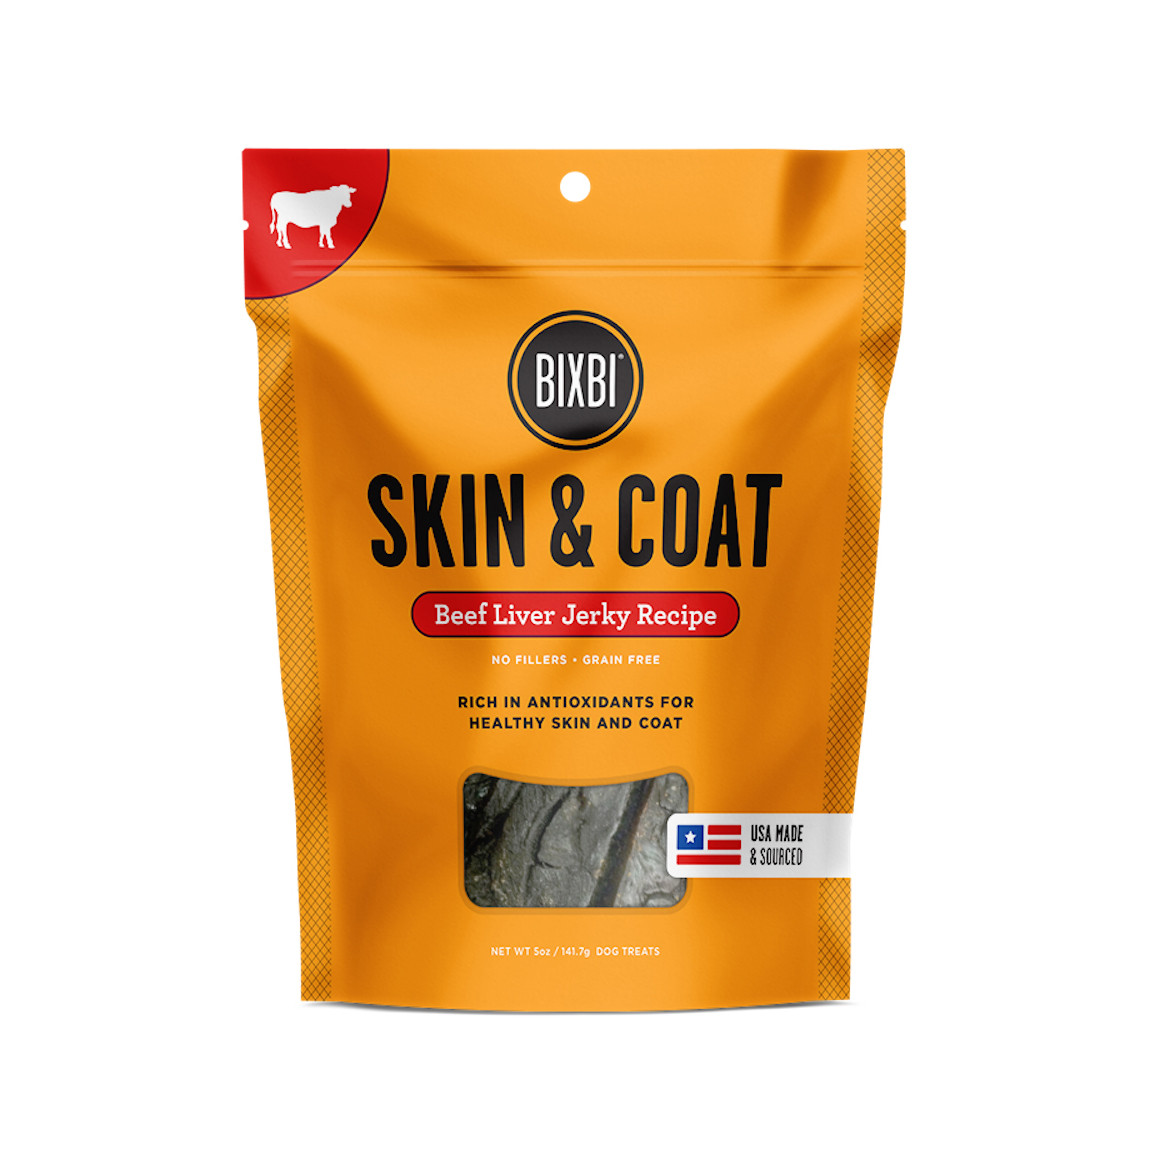 click here to shop Bixbi Skin & Coat Beef Liver Jerky Dog Treats